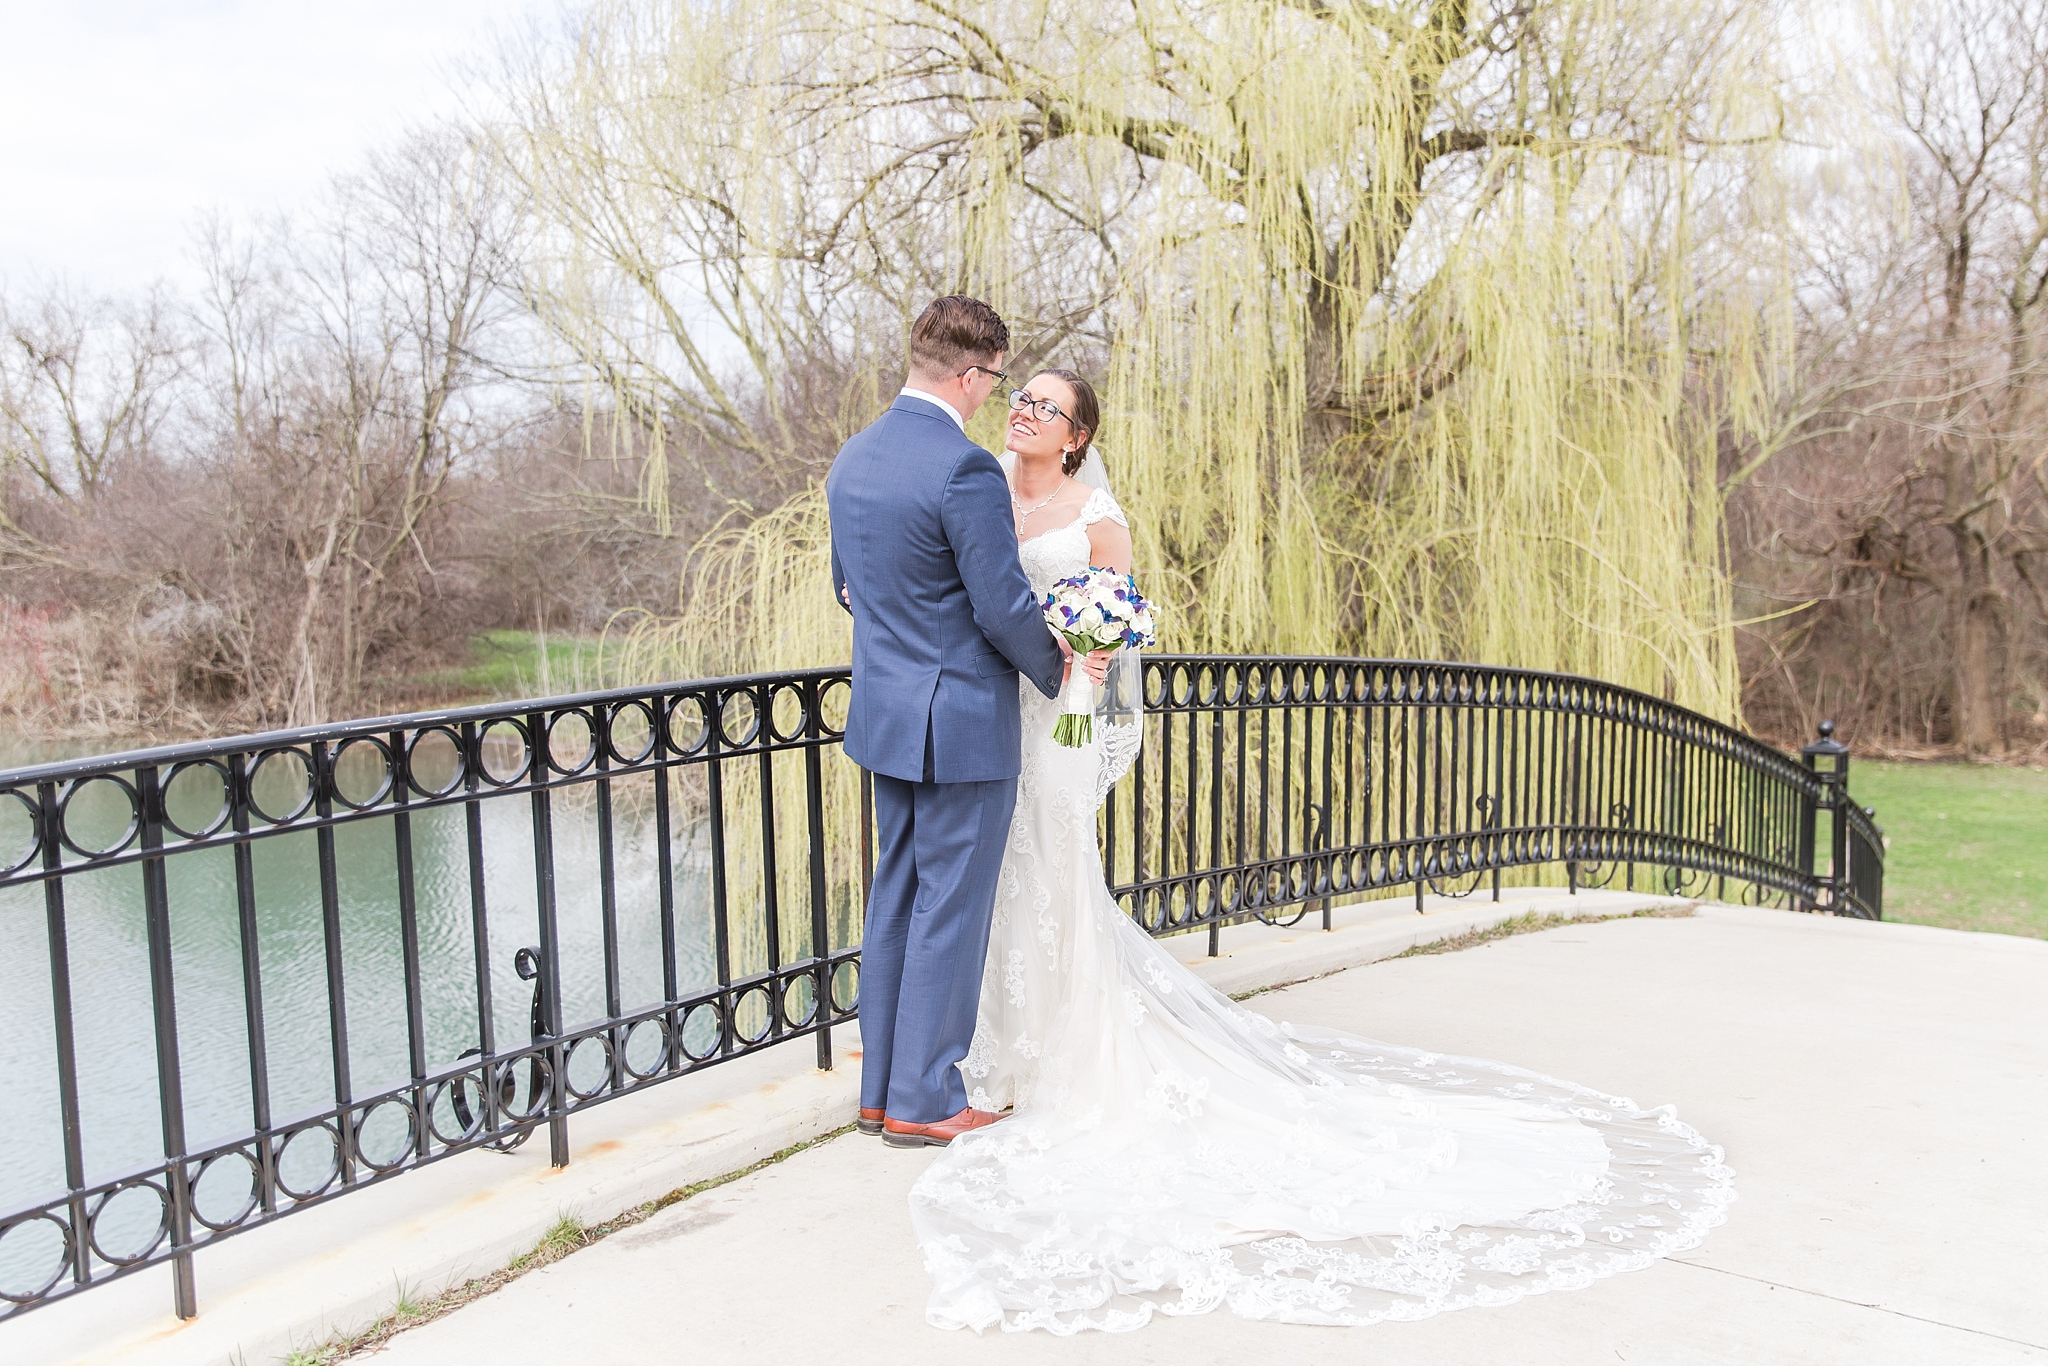 classic-timeless-candid-wedding-photos-in-grosse-ile-and-trenton-michigan-by-courtney-carolyn-photography_0056.jpg